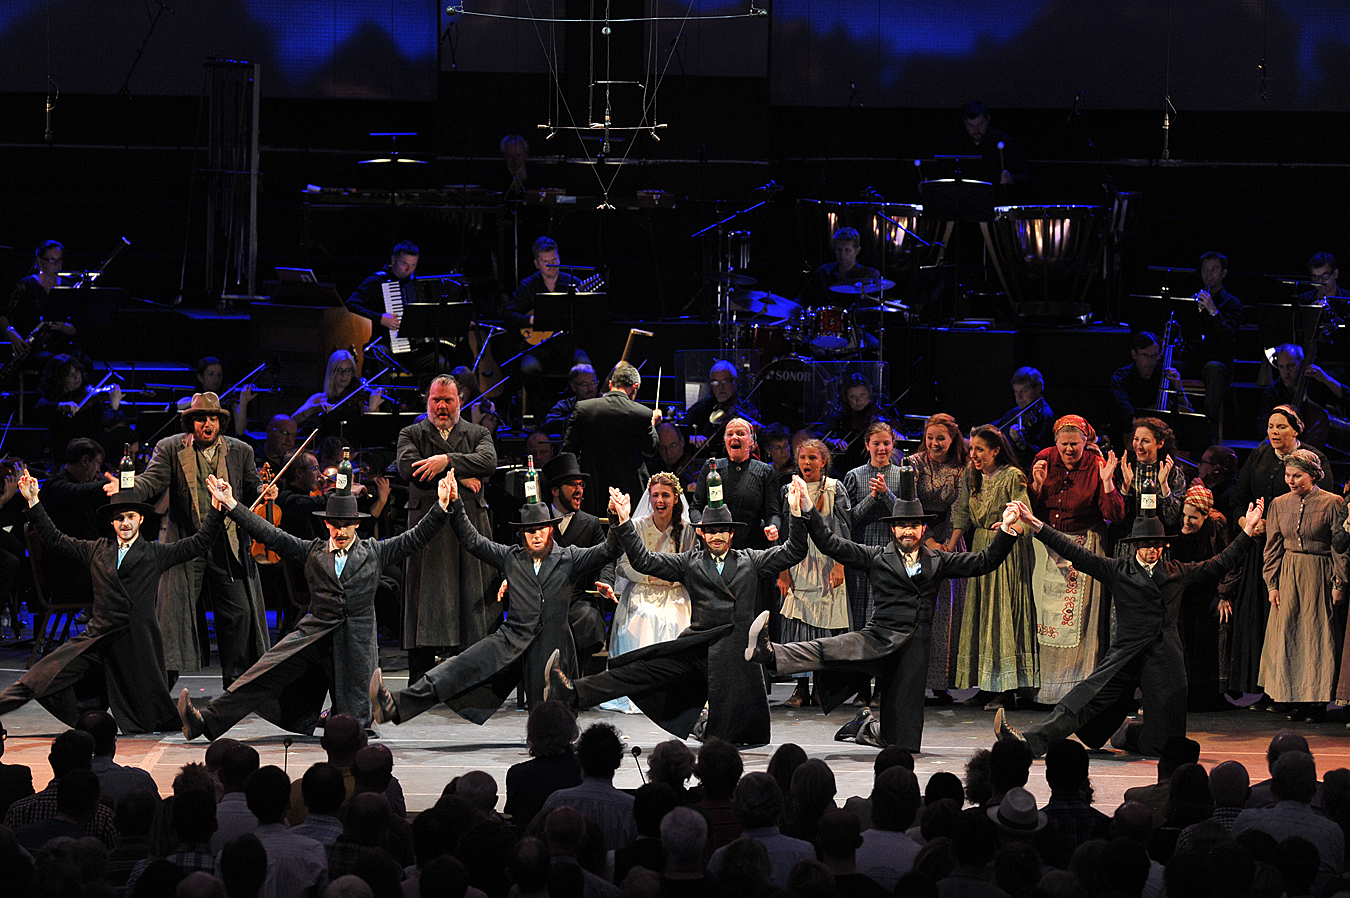 Dance routine in Proms Fiddler on the Roof